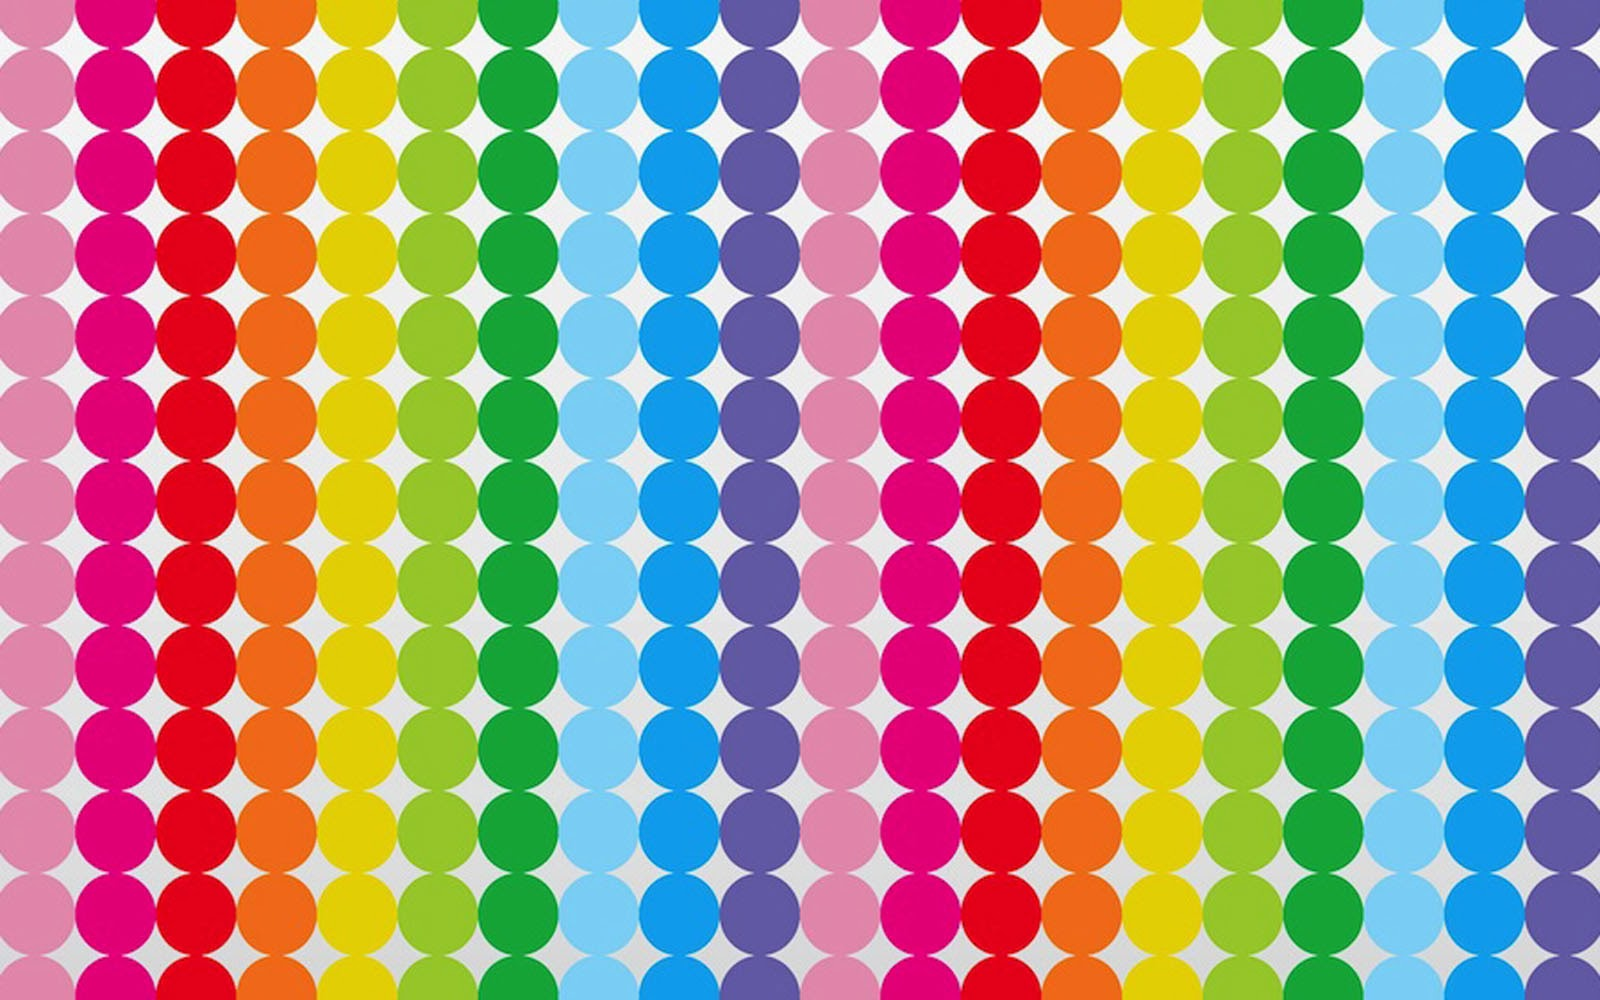 Download Free 3d Wallpapers For Windows 8 Wallpapers Geometry Rainbow Colours Wallpapers